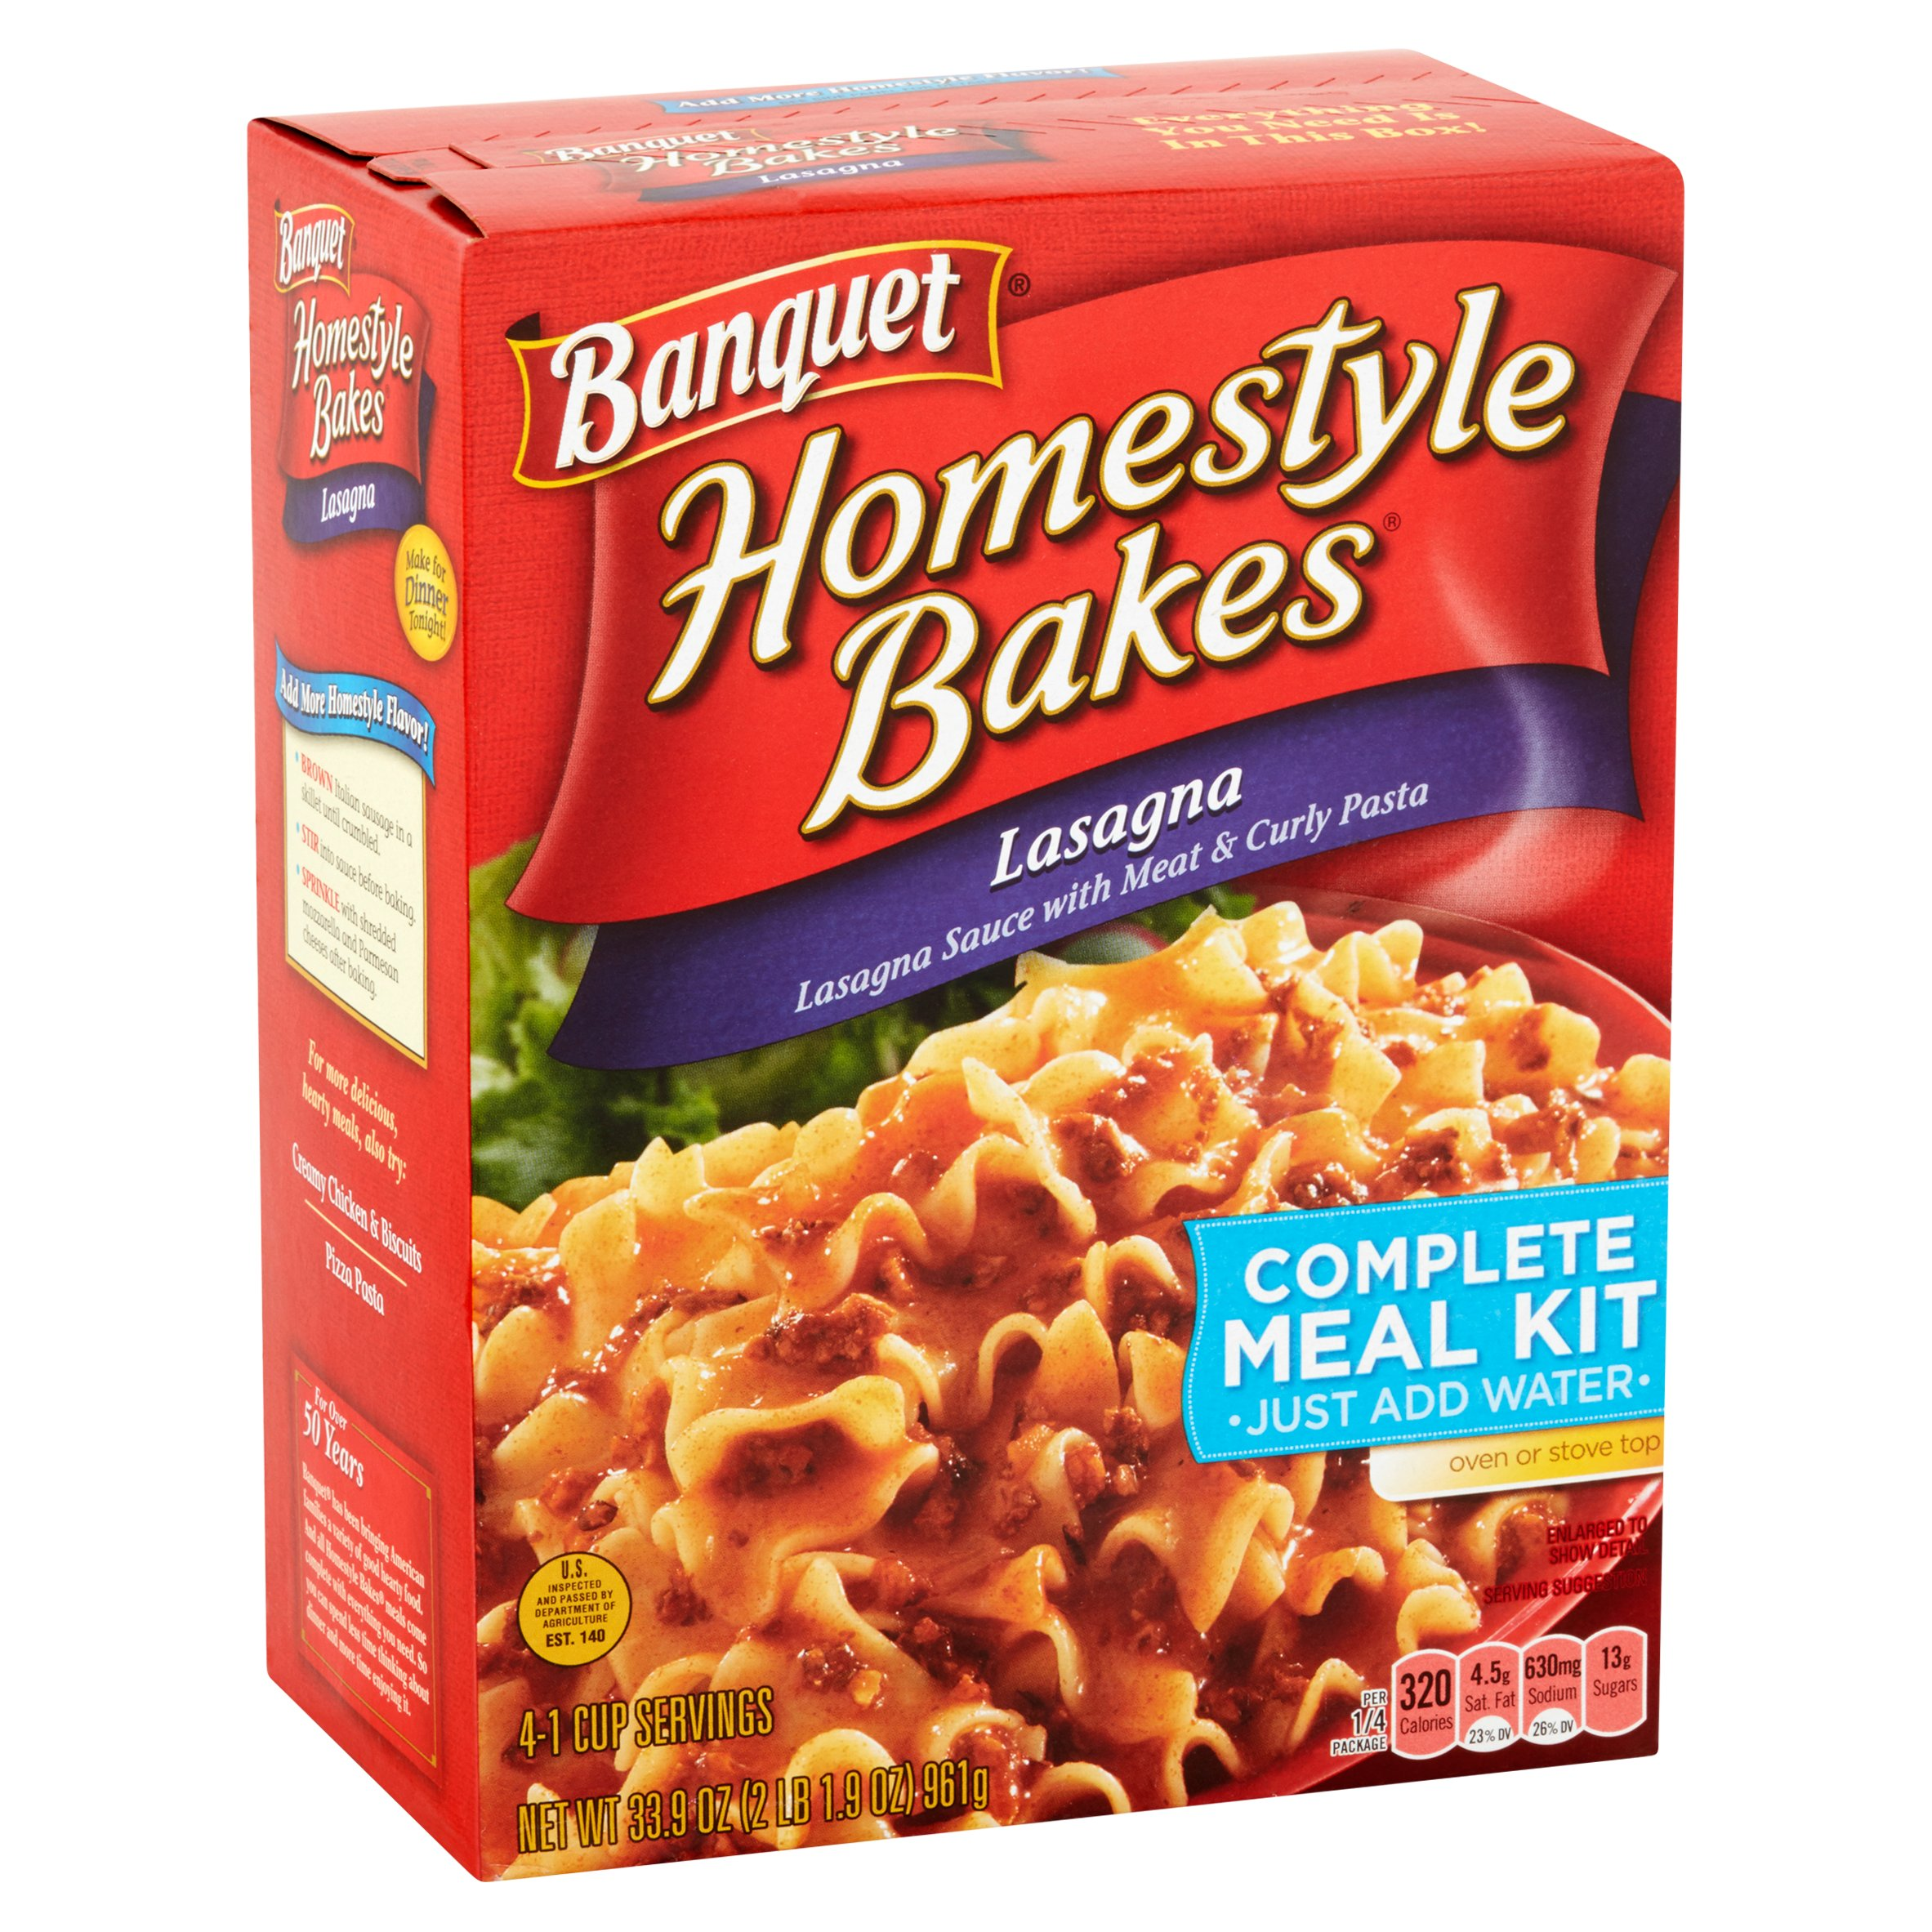 Banquet Homestyle Bakes Lasagna Complete Meal Kit My Meals Are